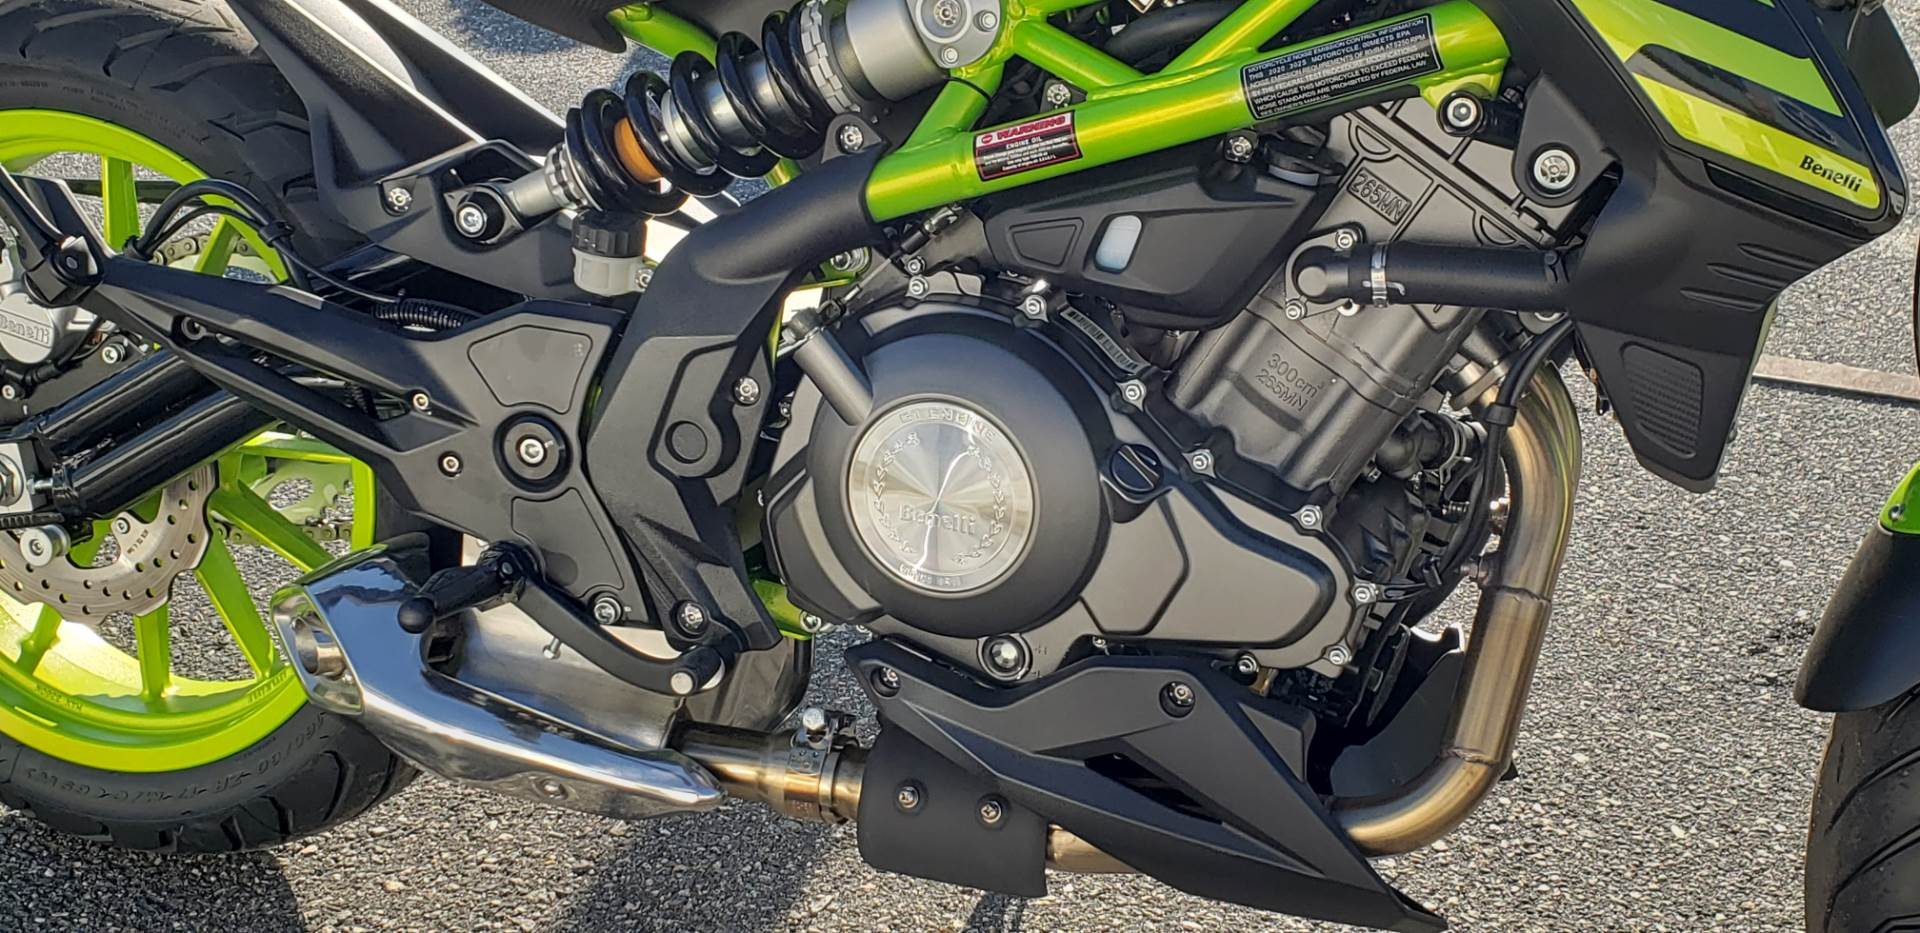 2020 Benelli 302 S in Hayes, Virginia - Photo 4